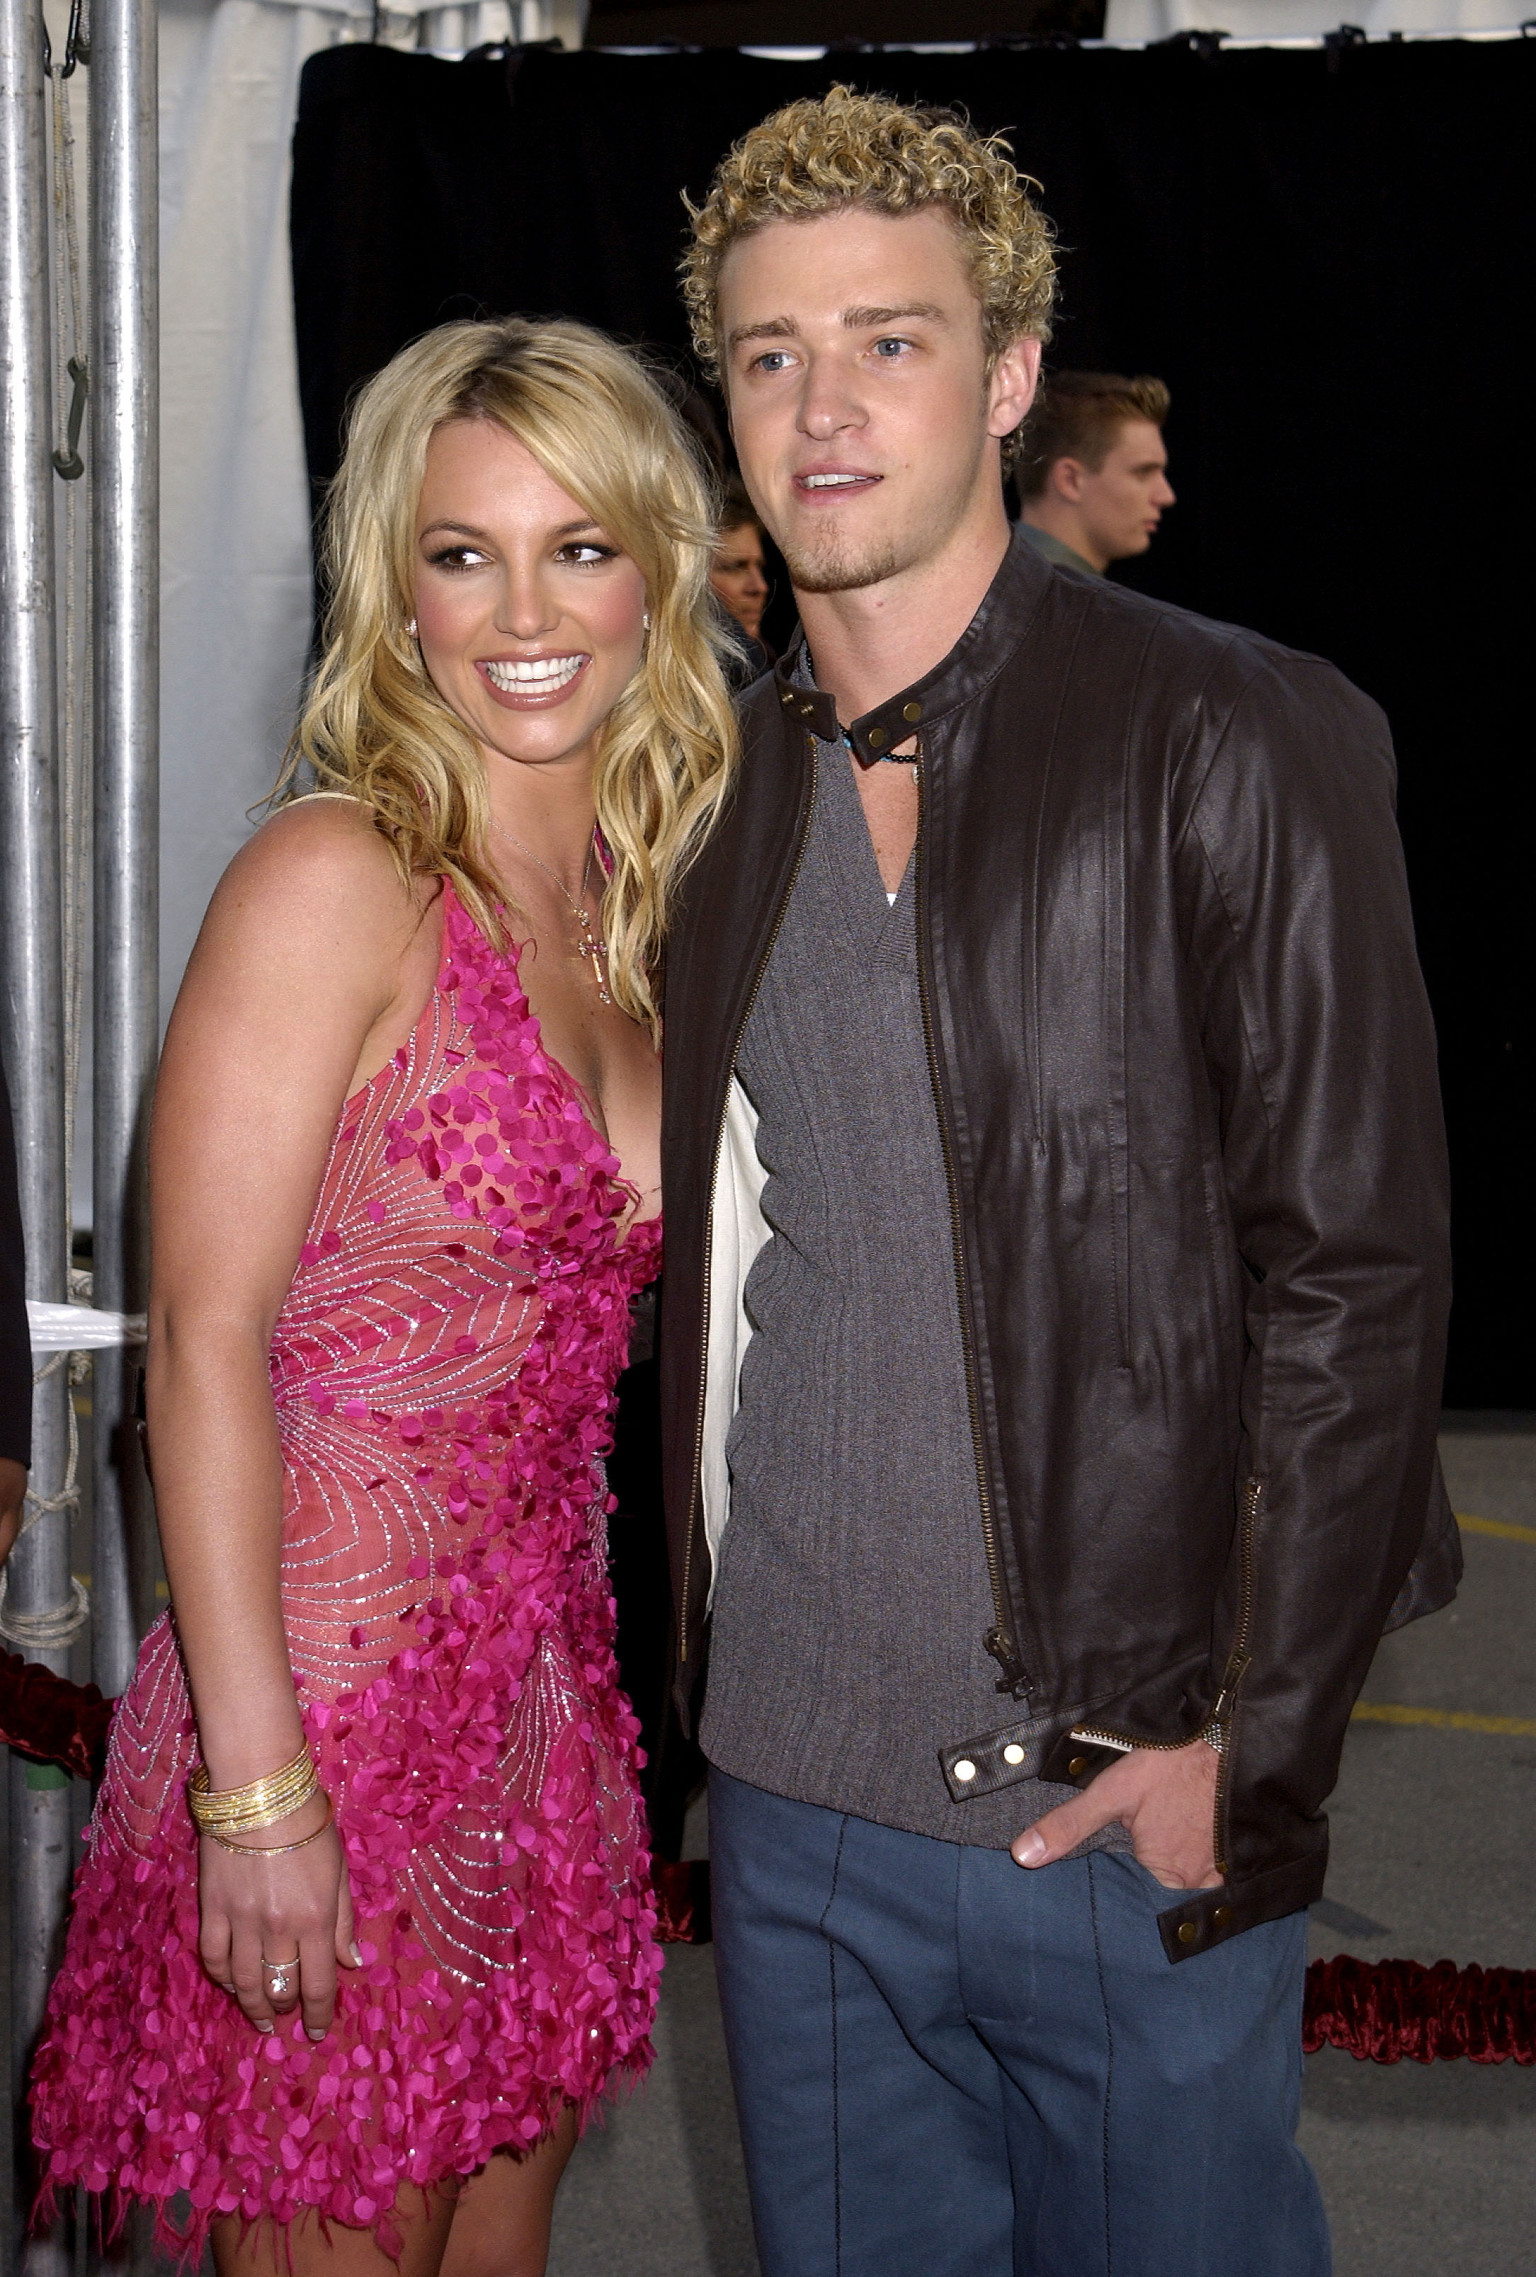 when did britney spears and justin timberlake start dating